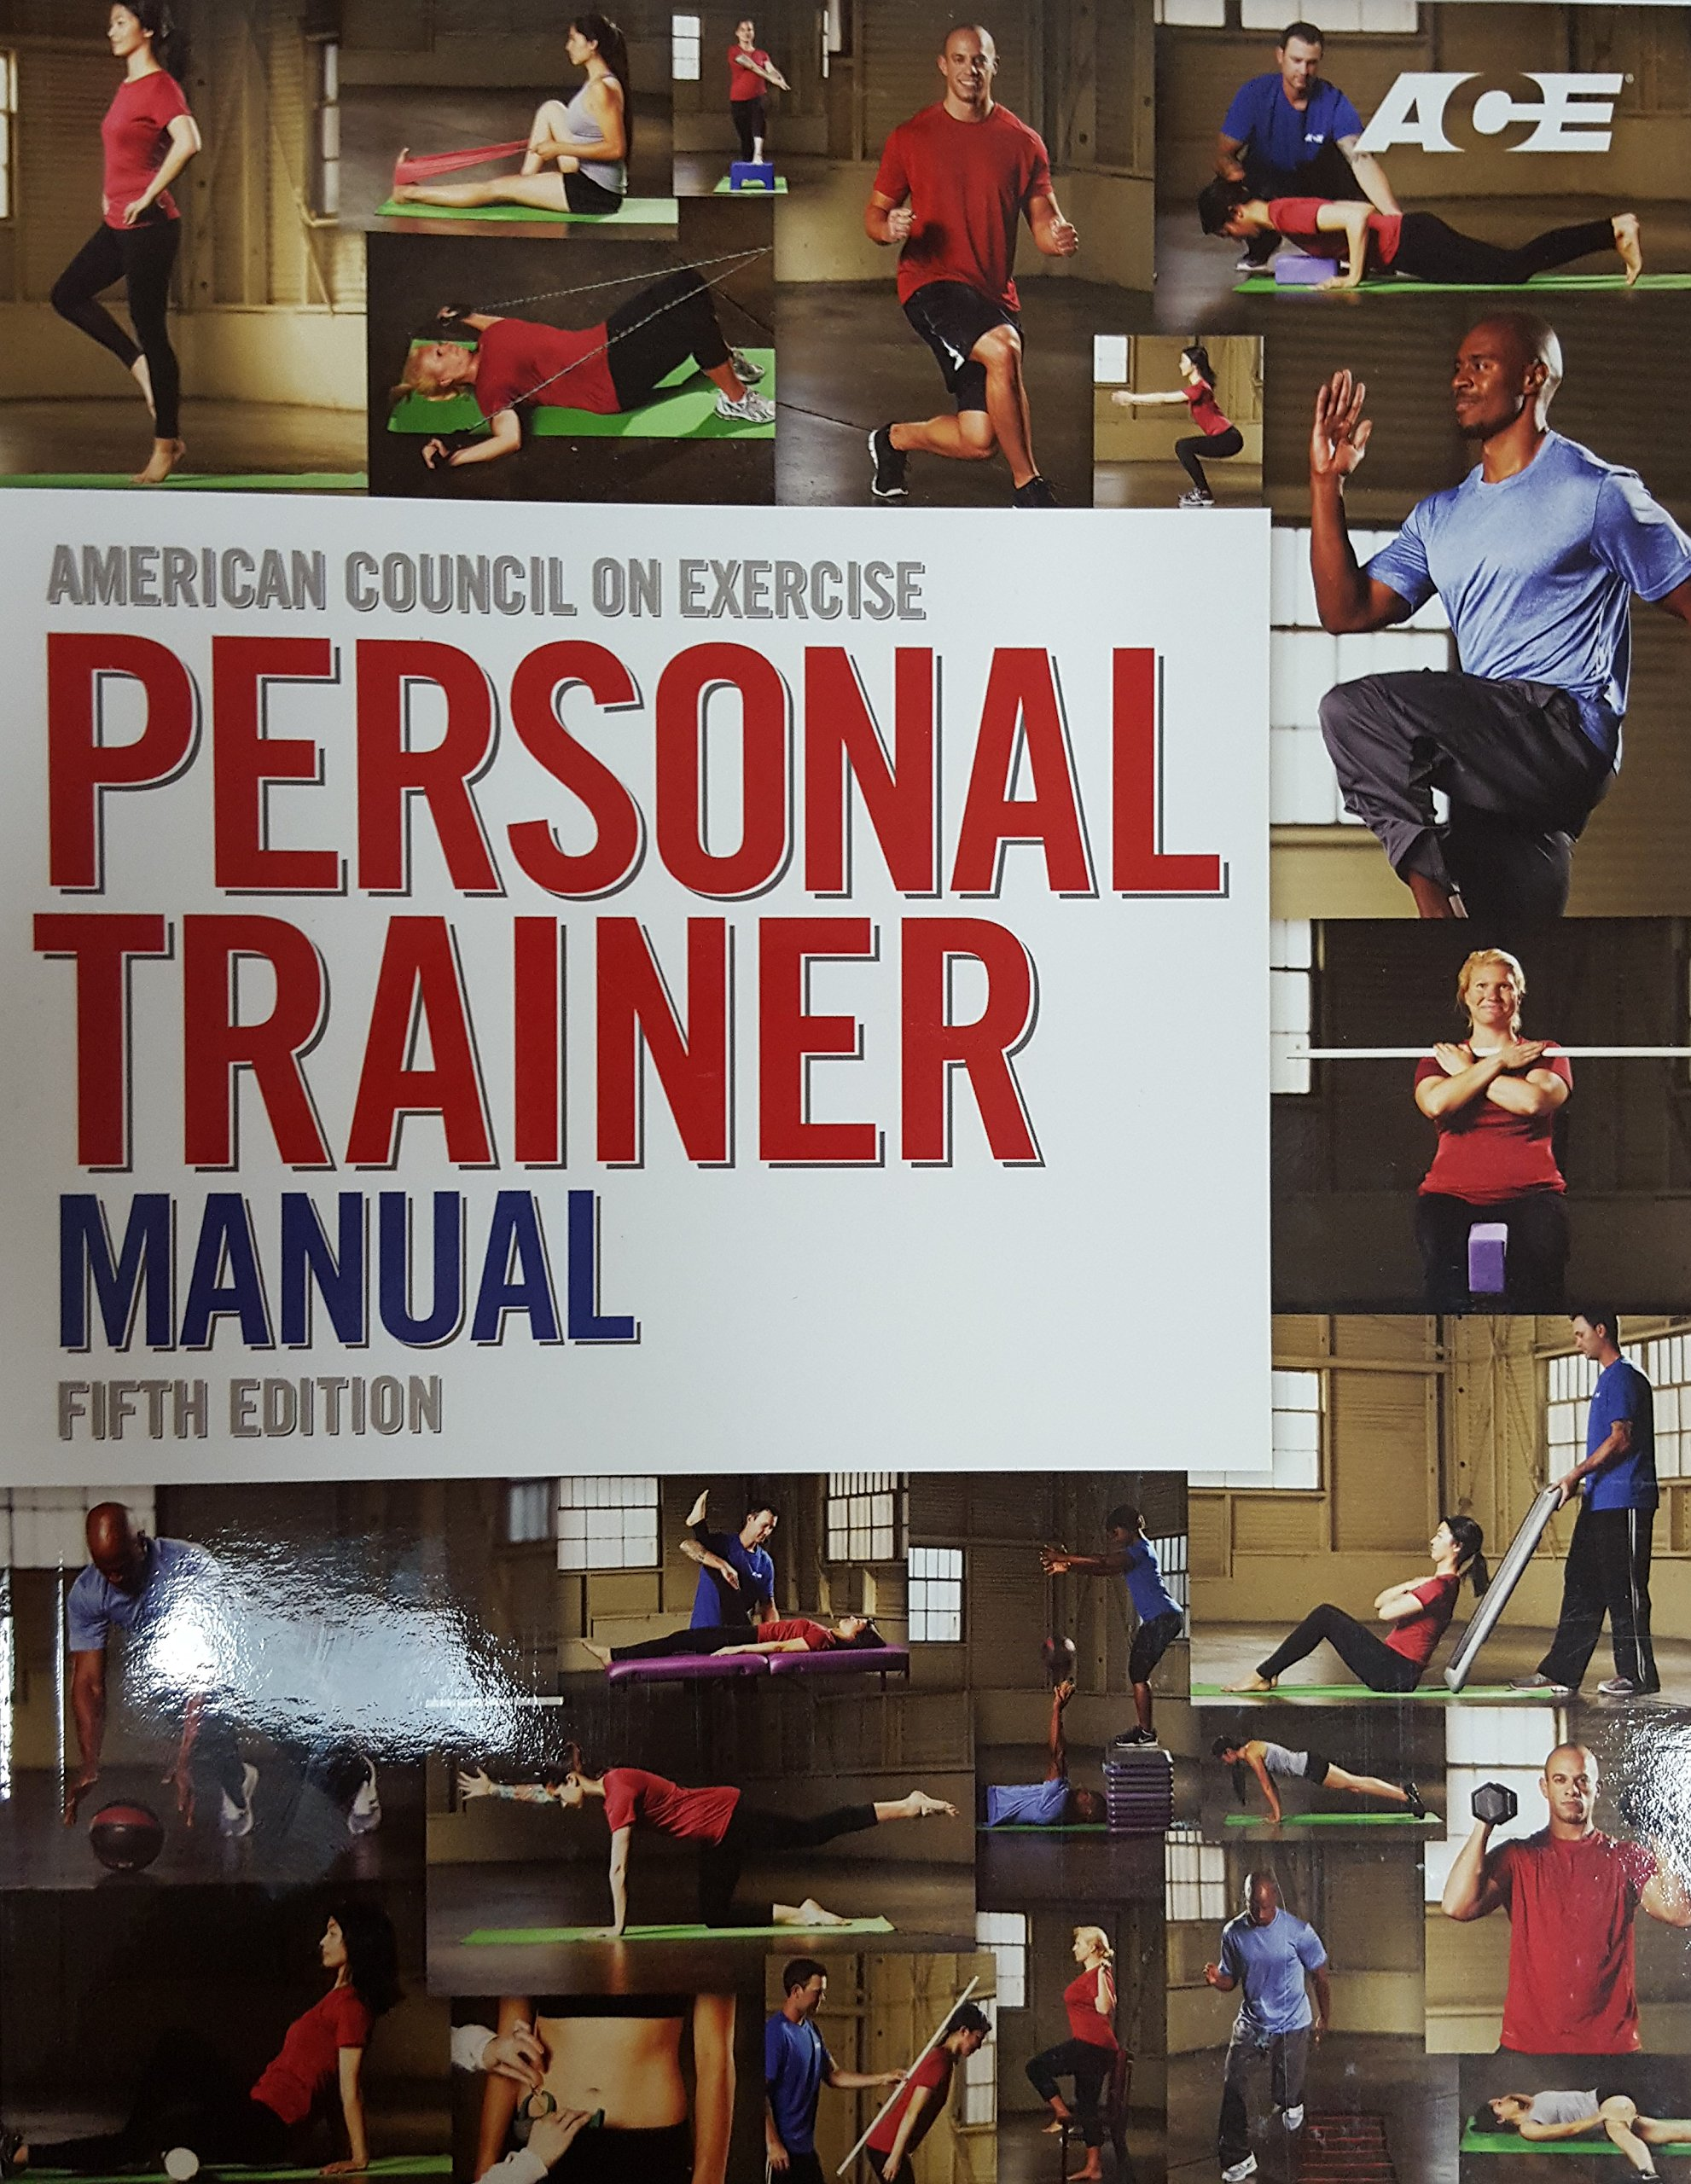 ace personal trainer manual 5th edition pdf American Council on Exercise Personal Trainer Manual, 5th Edition ...